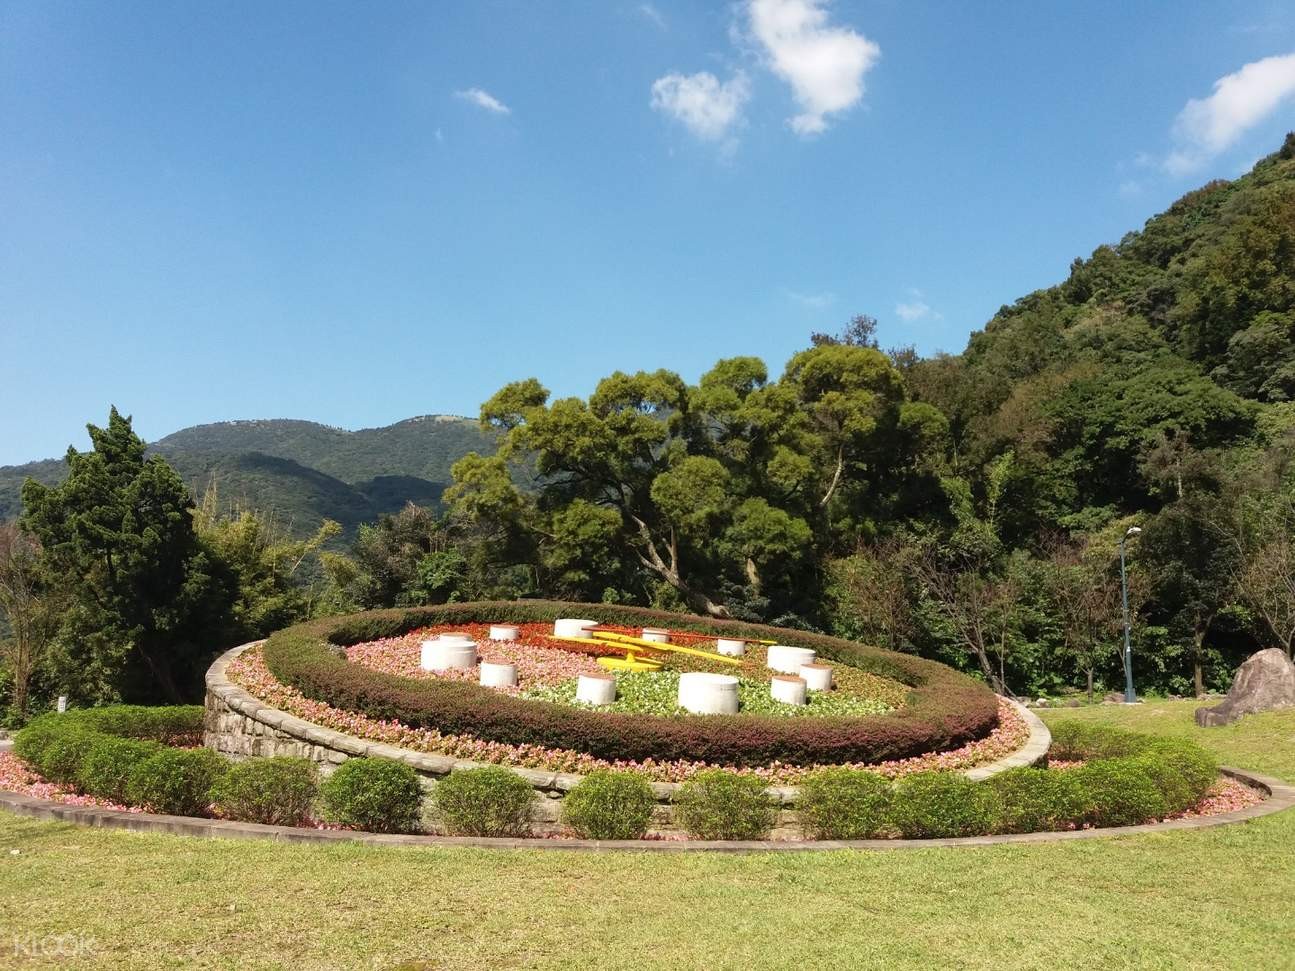 flower clock at Yangmingshan National Park